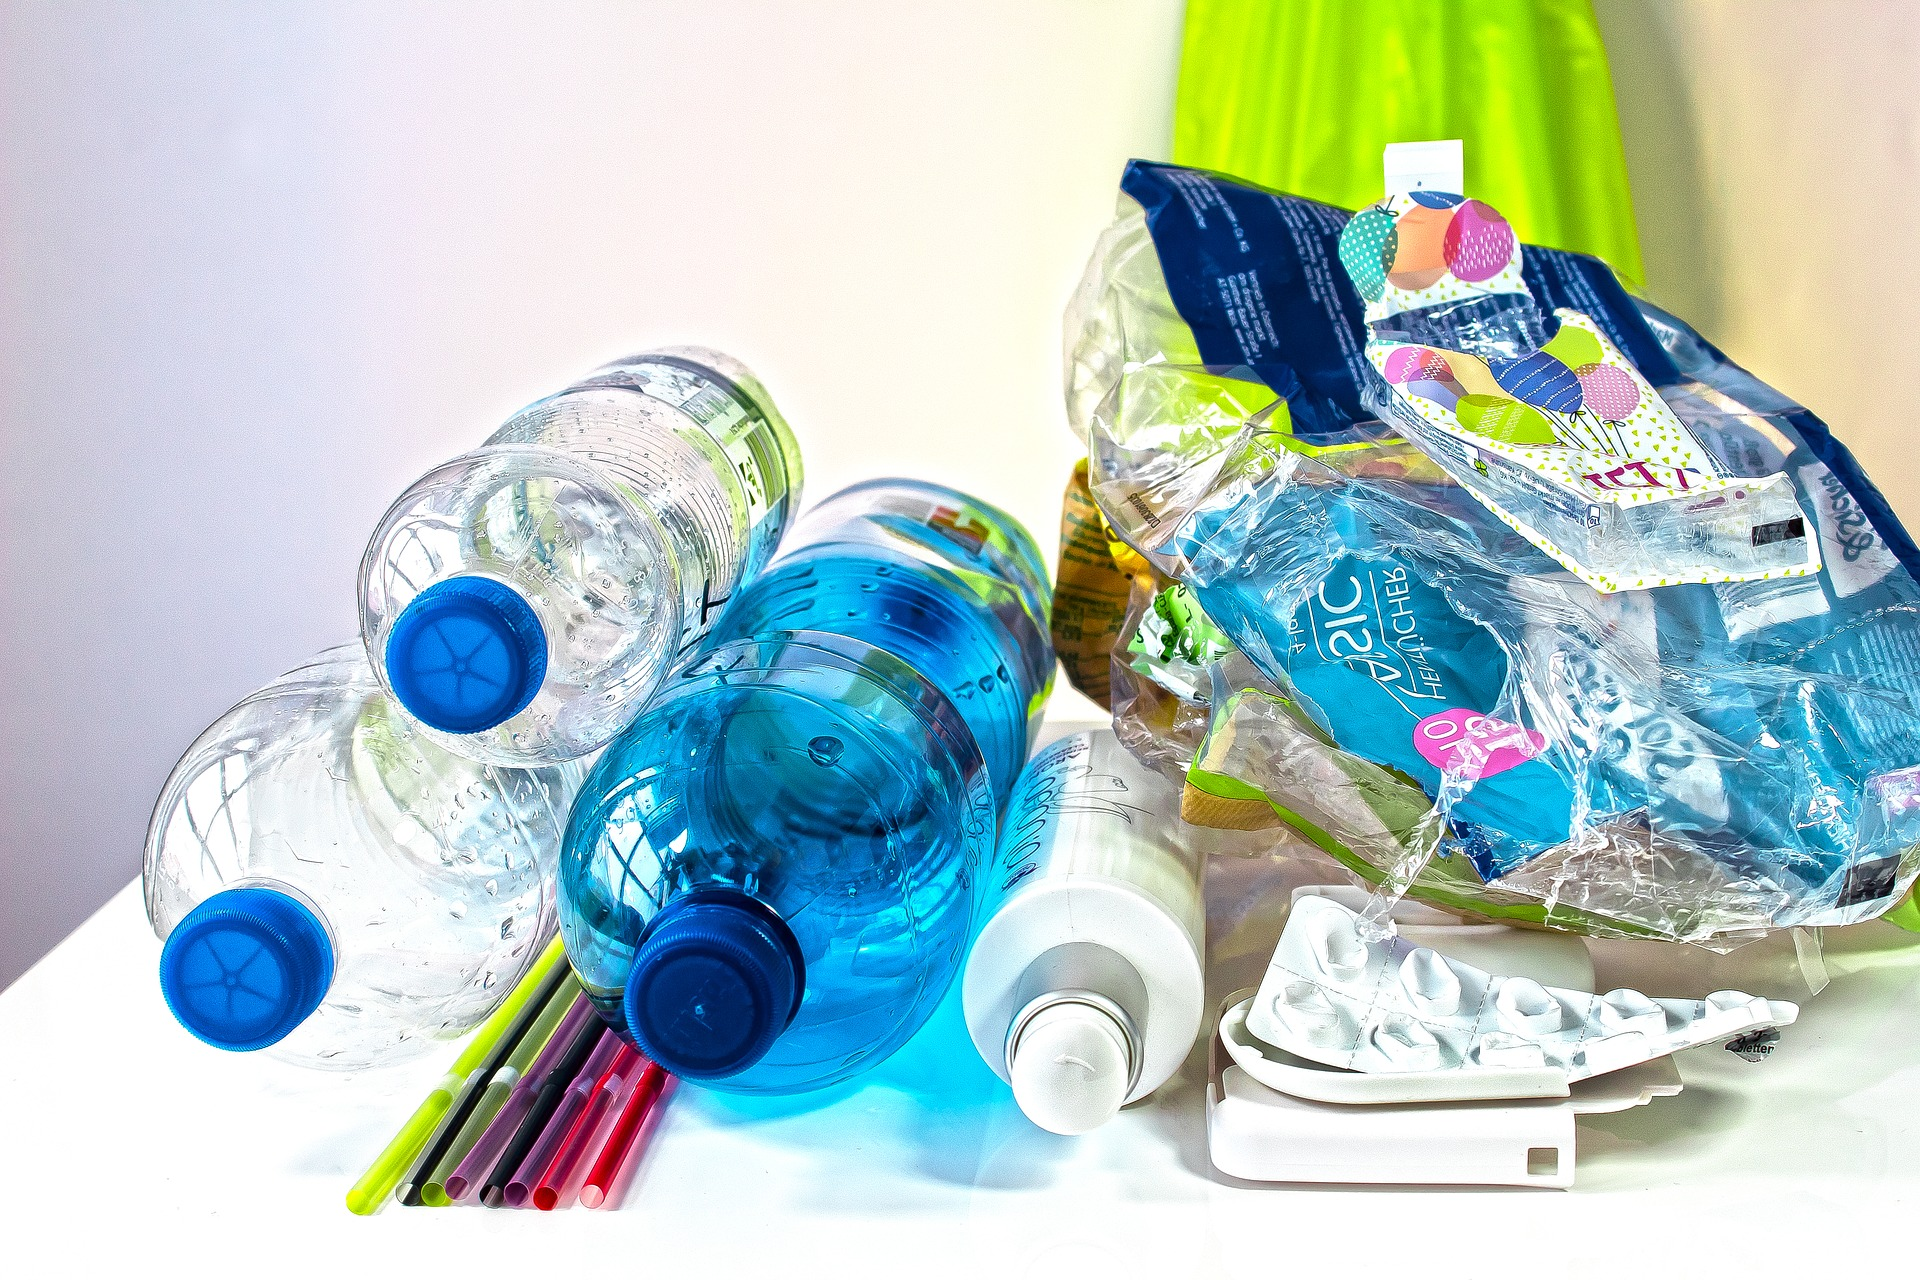 UK Plastics Pact and other reporting deadlines coming soon